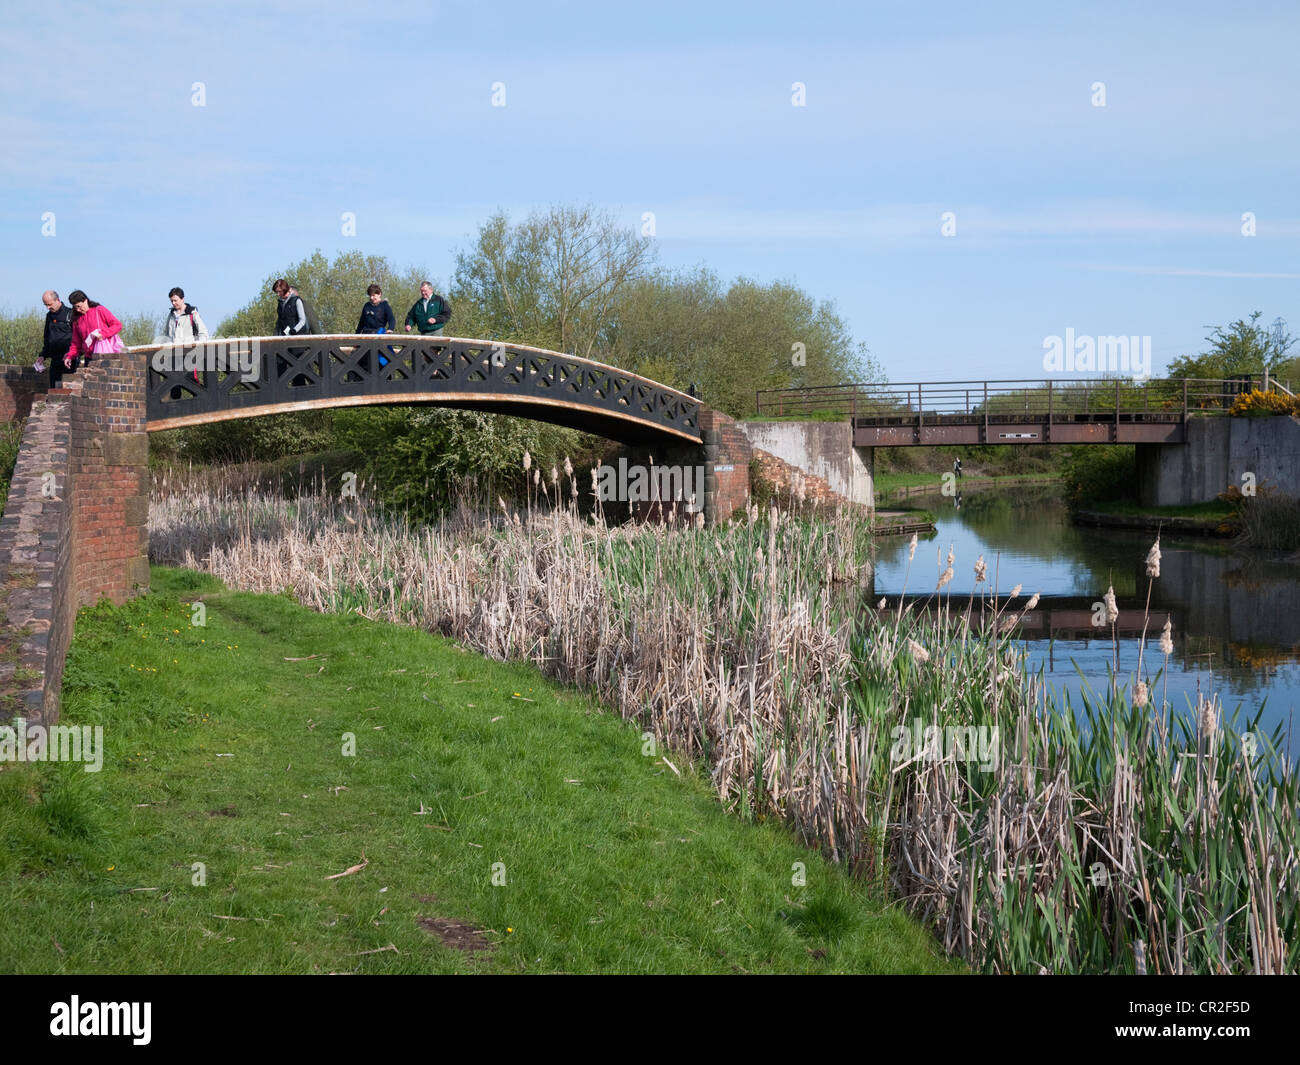 'Dudley Trail' walkers on the Dudley Canal near Netherton in the Black Country, West Midlands - Stock Image